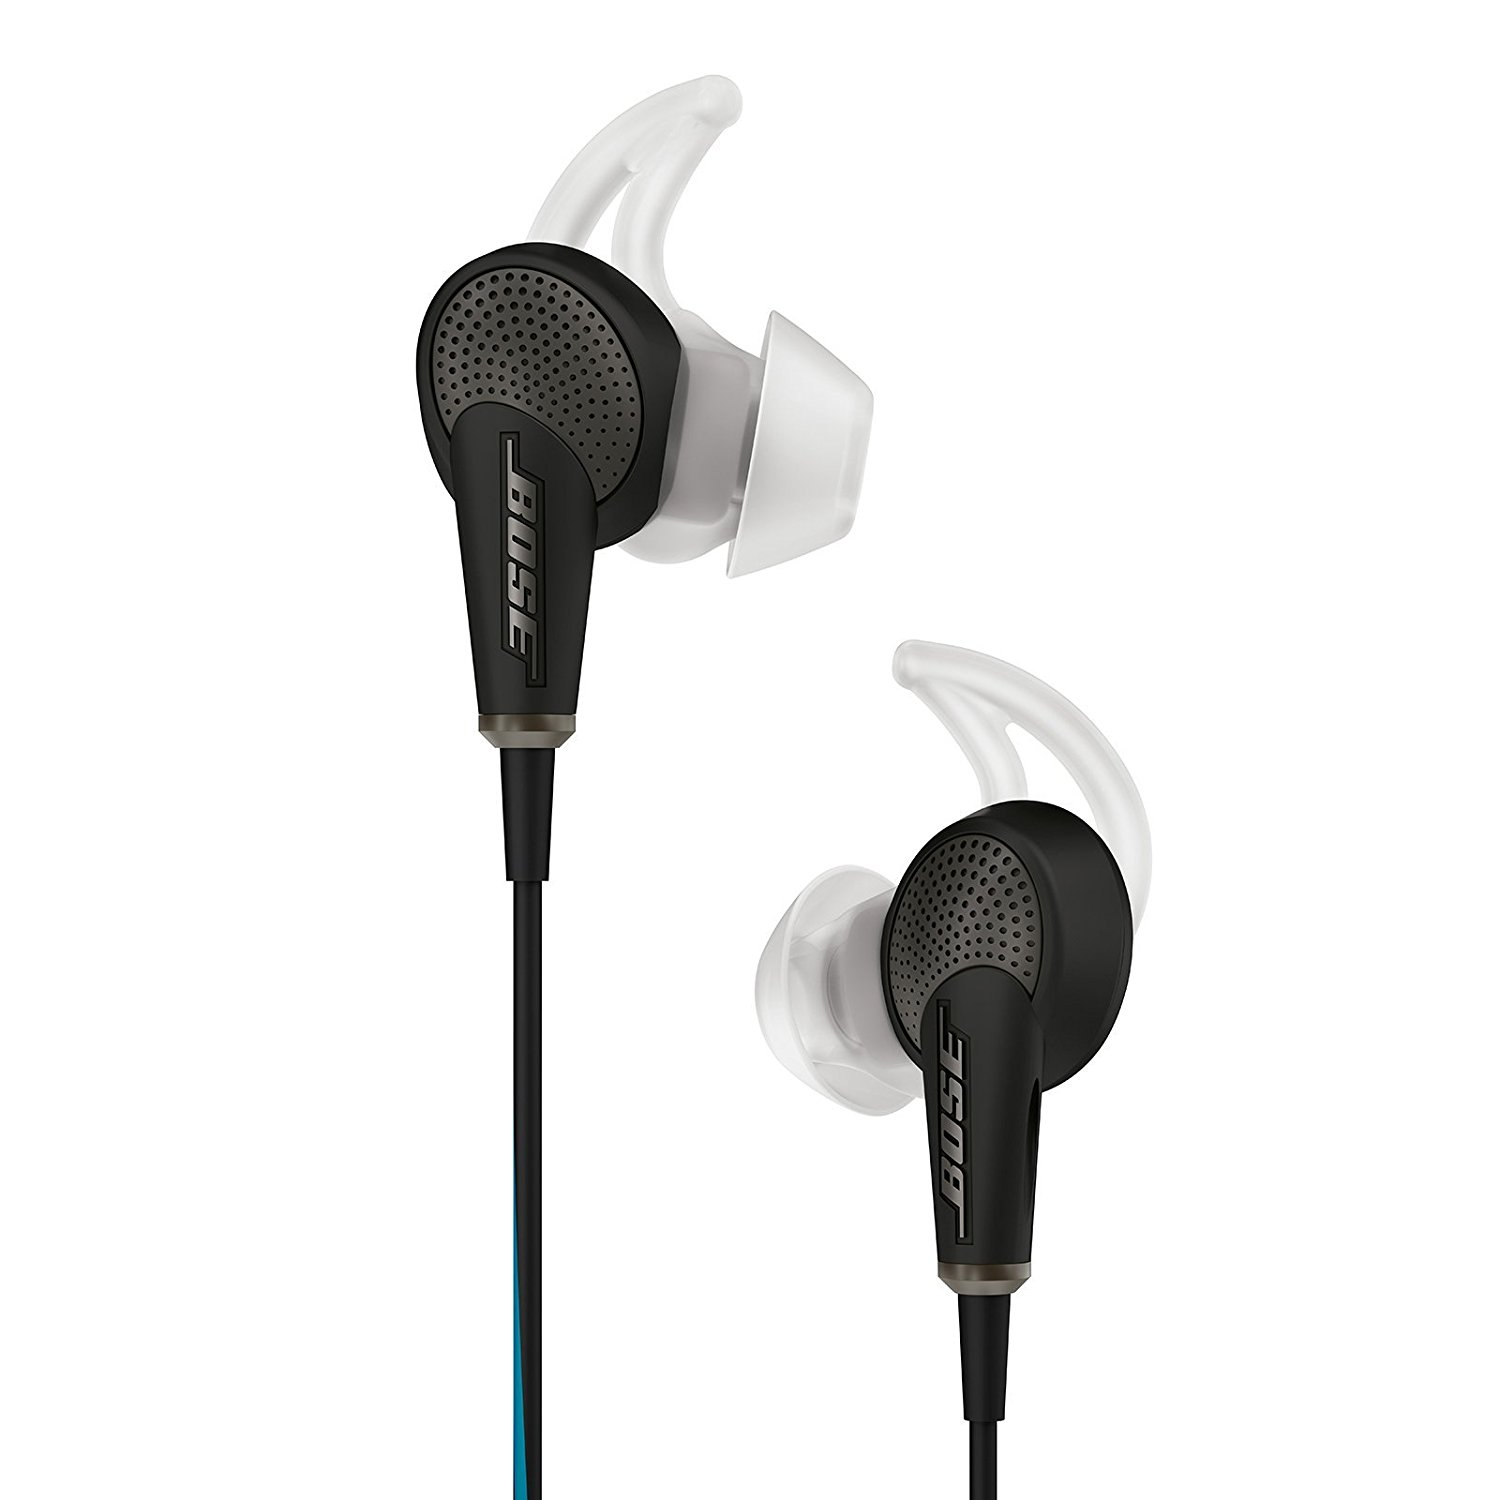 Top-value-Comfortable-Earbuds